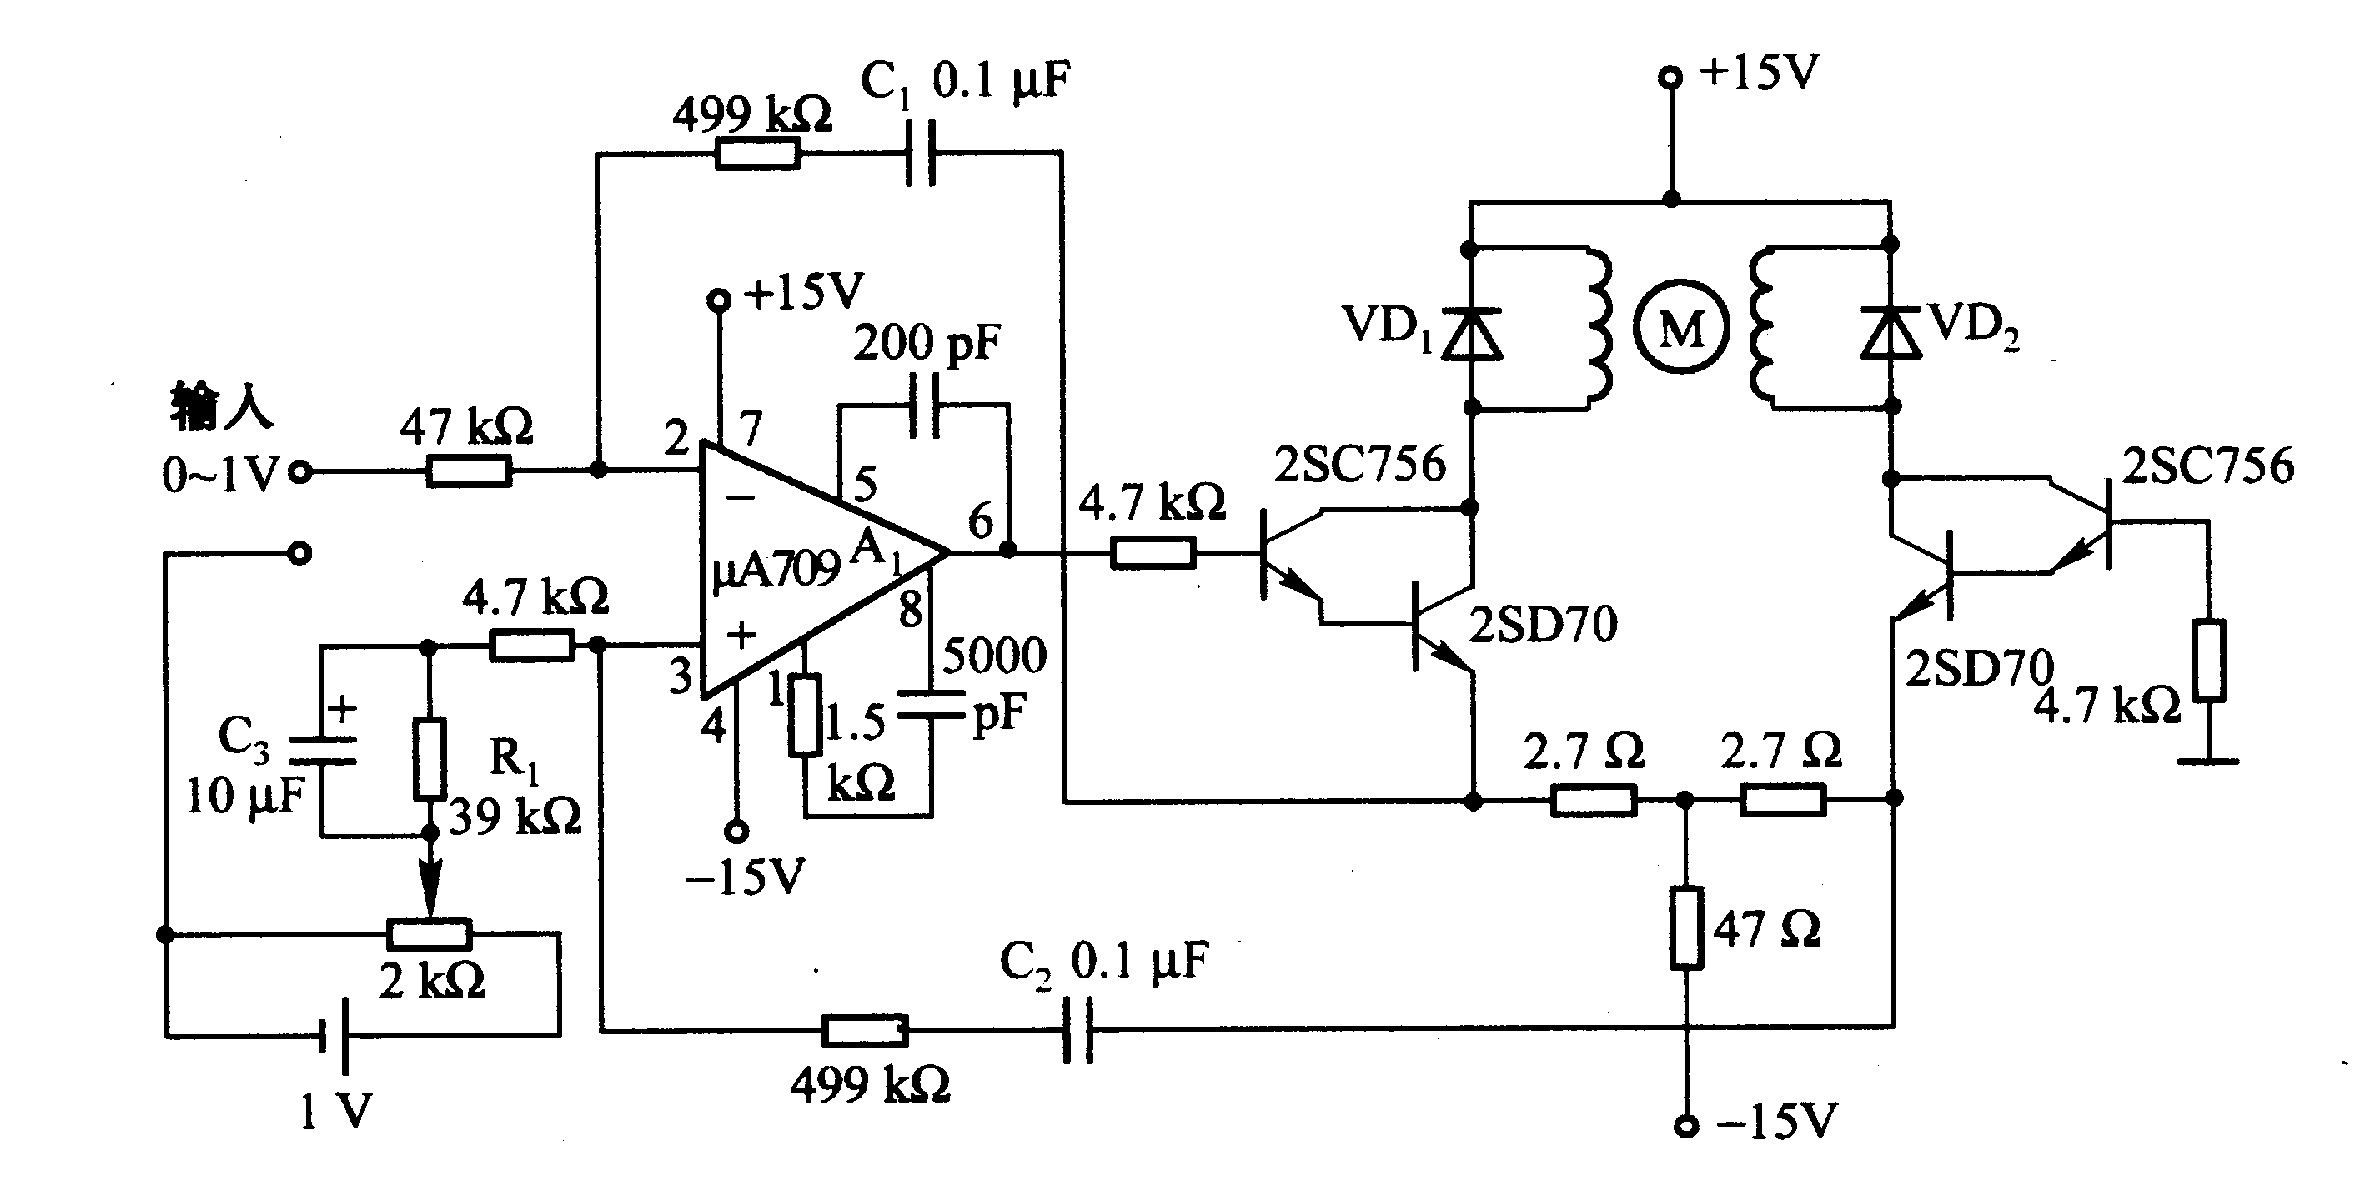 Servo Drive Wiring Diagram Diagrams Data Base Rc Airplane Wire Schematics Rh Quizzable Co At Schematic Woodmart Dc